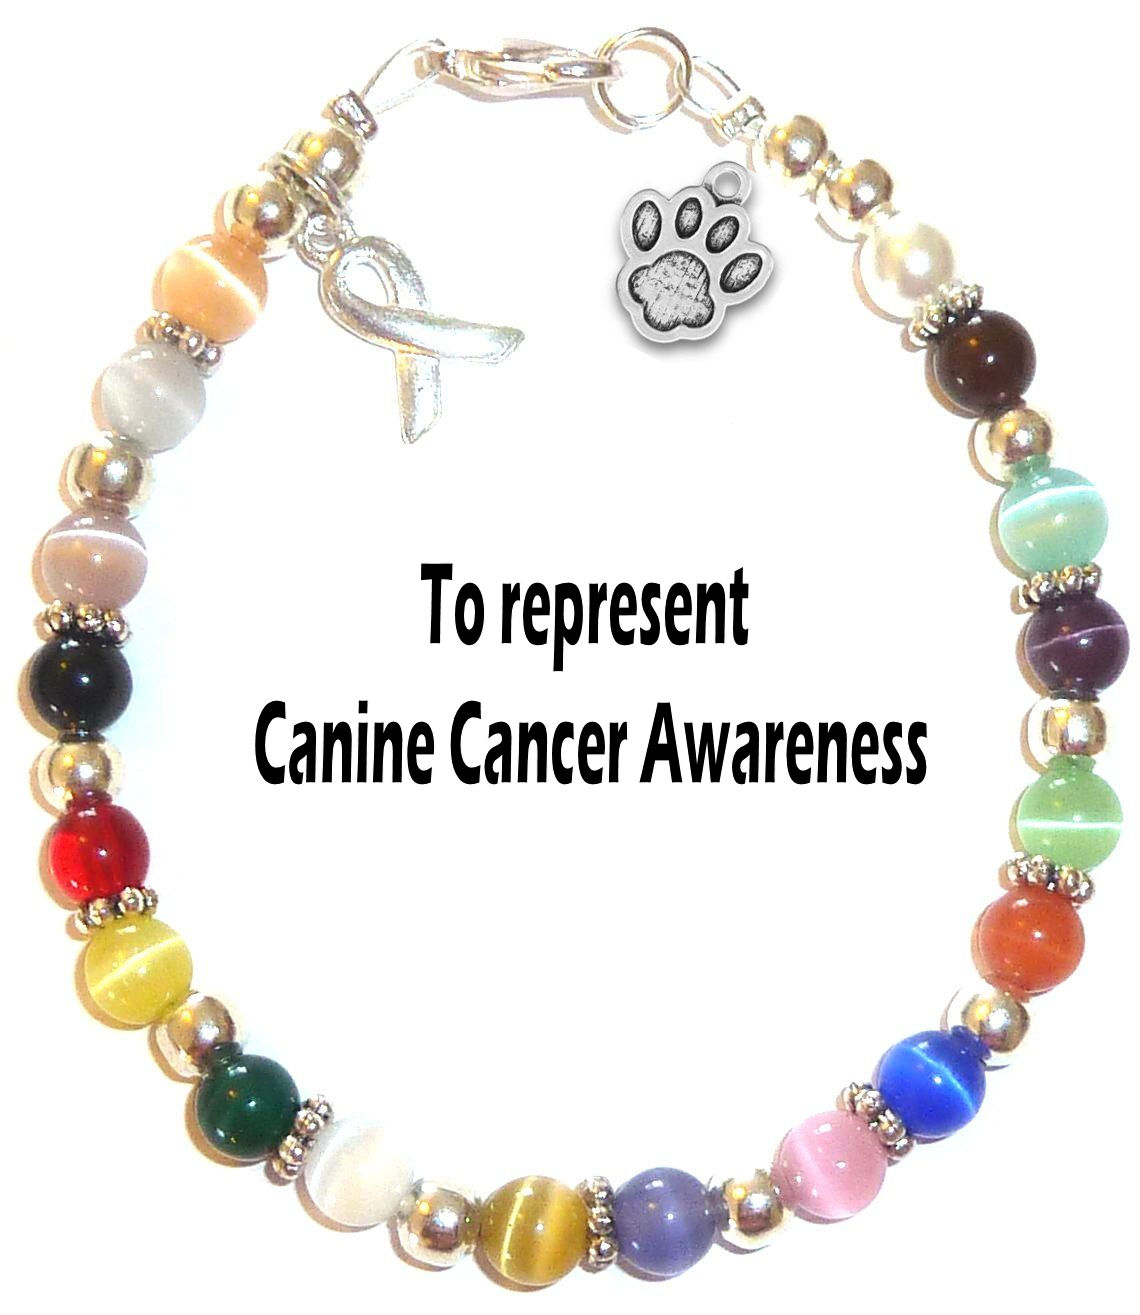 18 Colors Packaged Cancer Awareness Bracelet 6mm For Canine